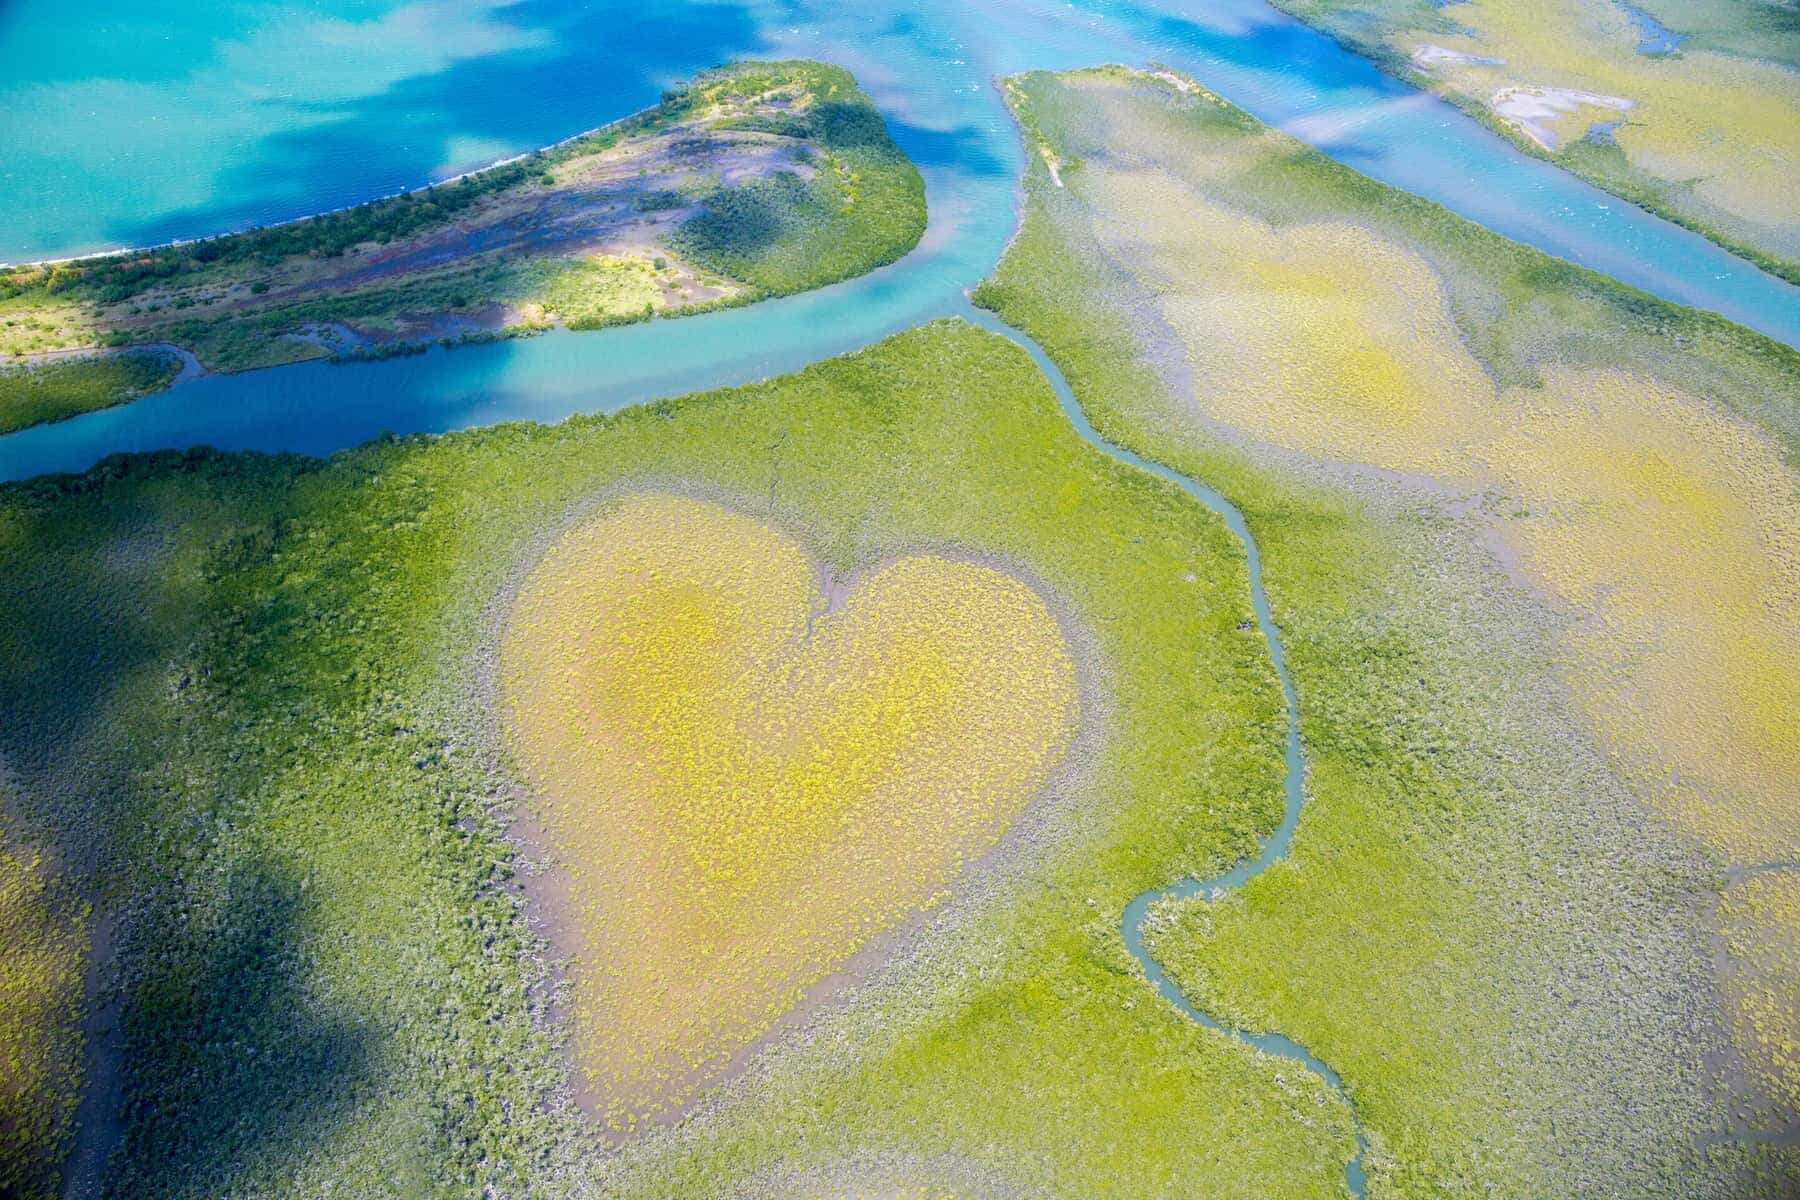 Heart of Voh, aerial view, mangroves resemble a heart seen from above, New Caledonia, Micronesia